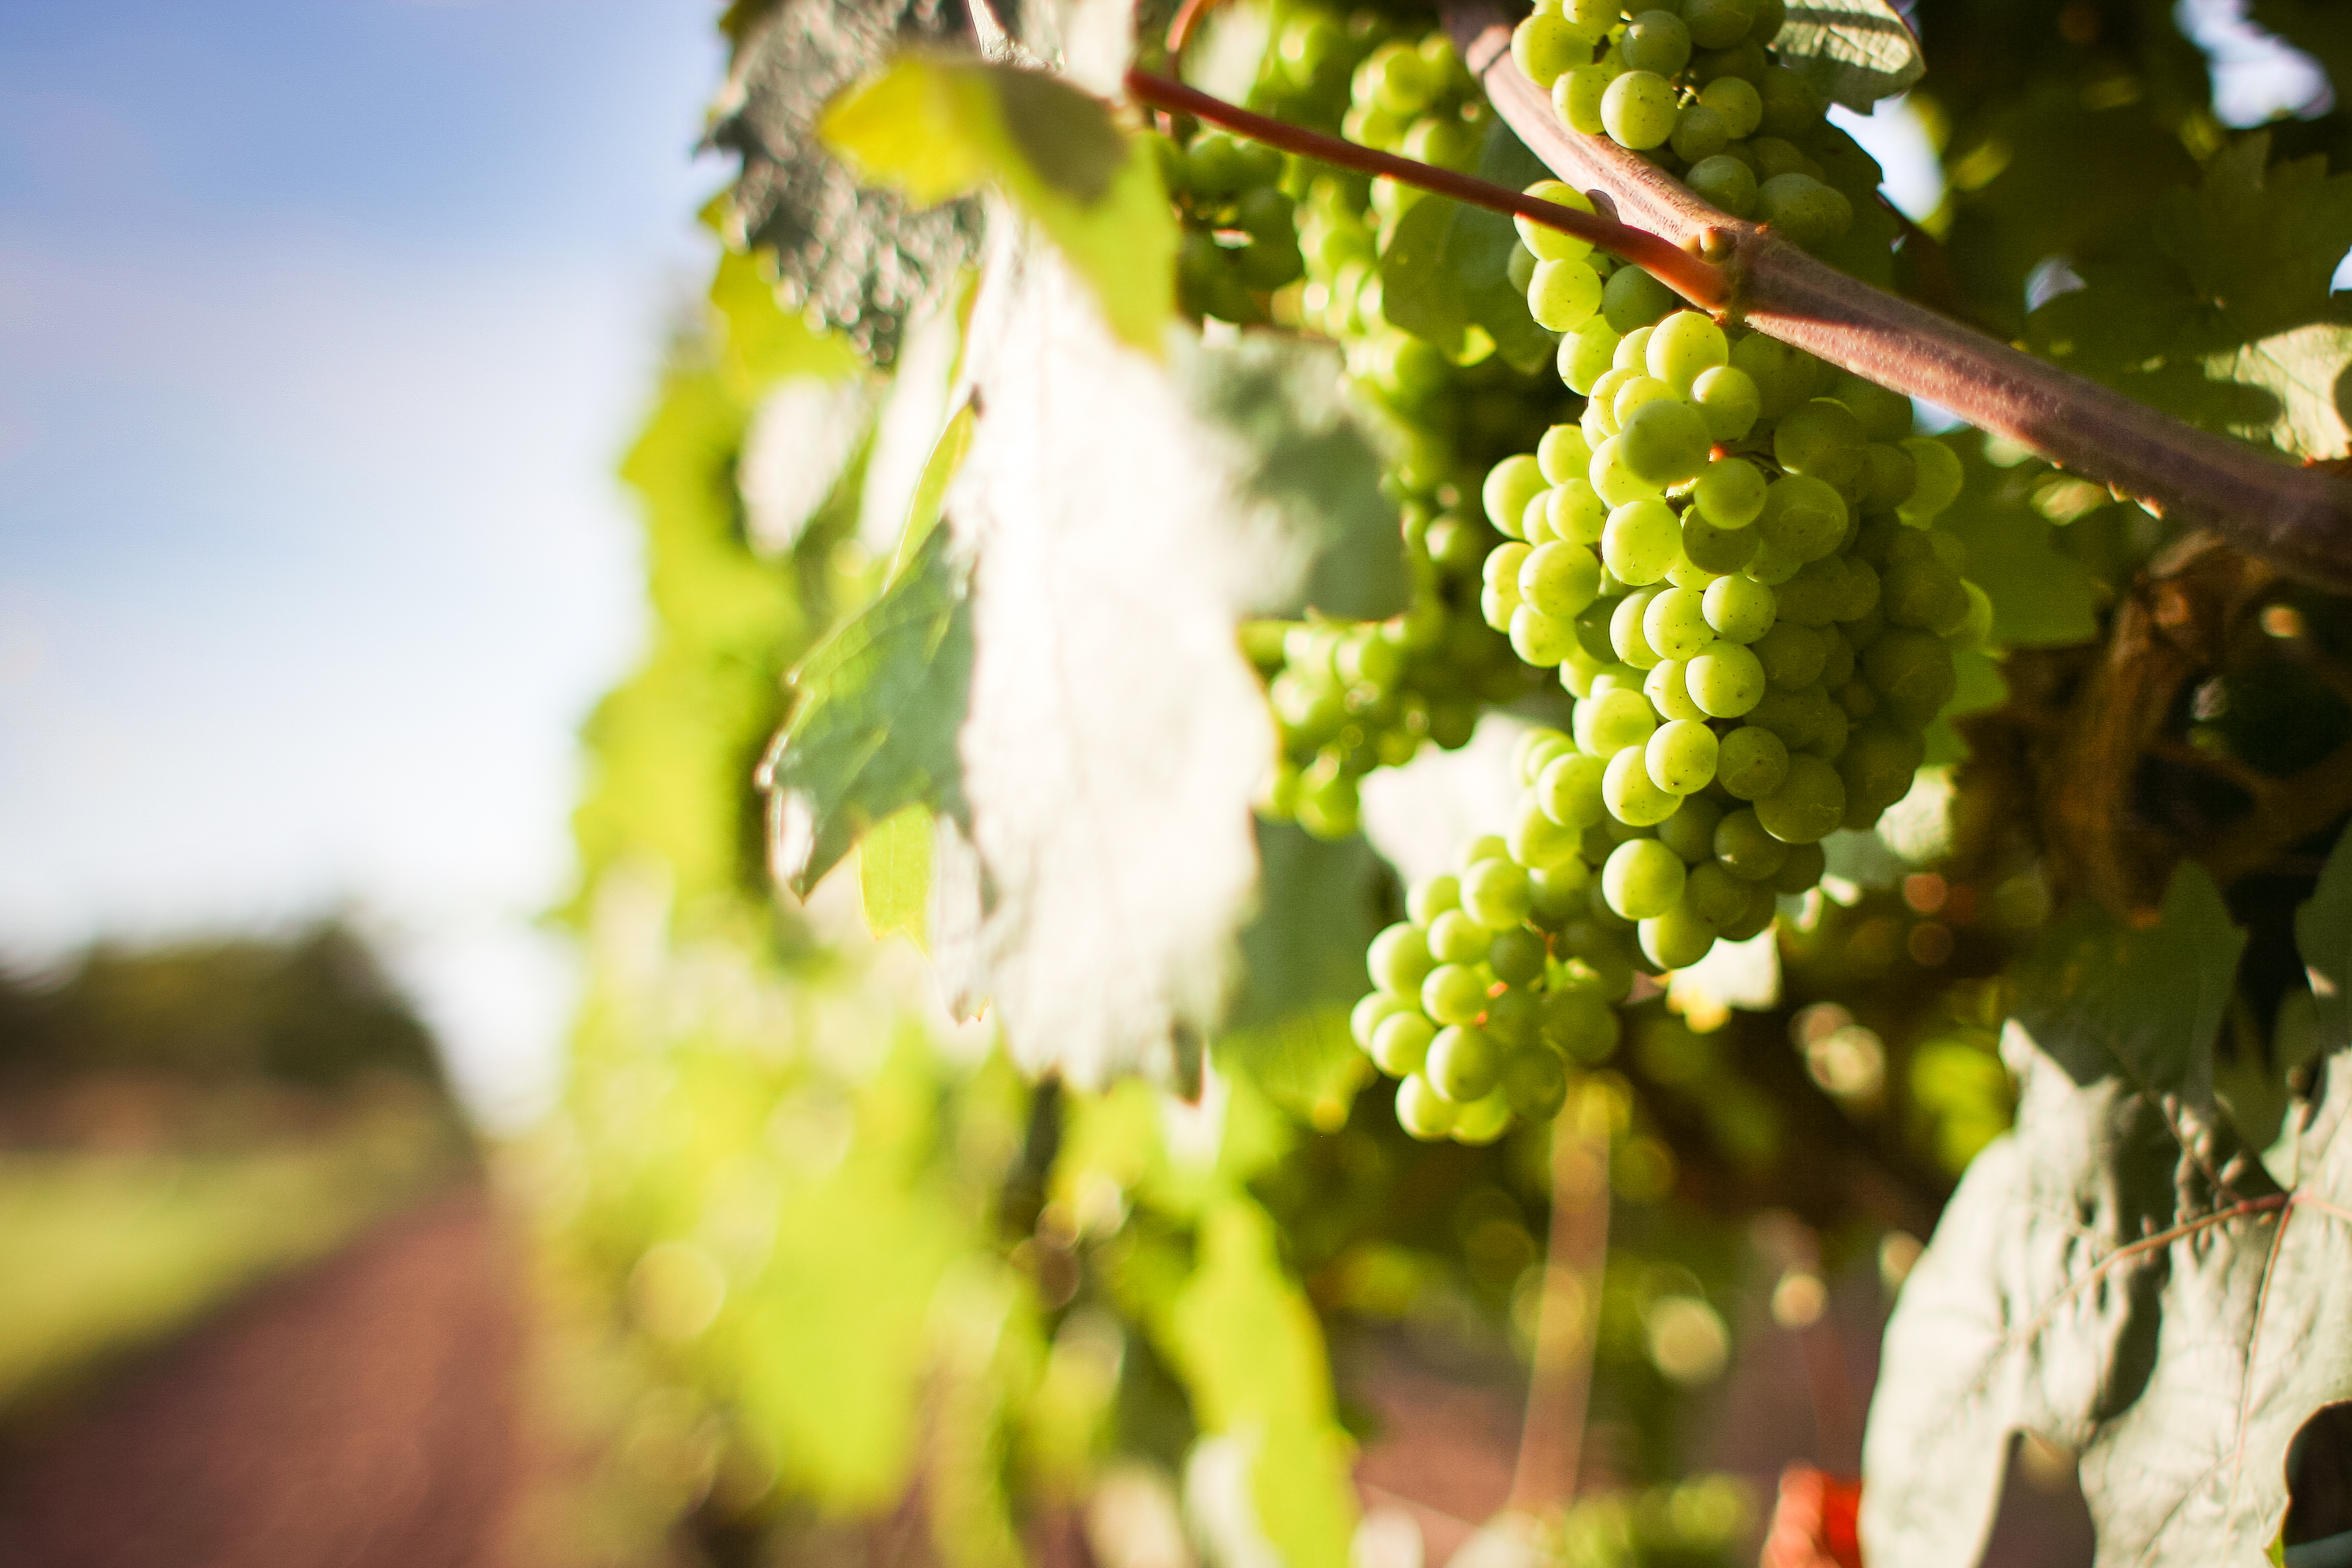 grapevine-with-detail-of-grapes-picjumbo-com